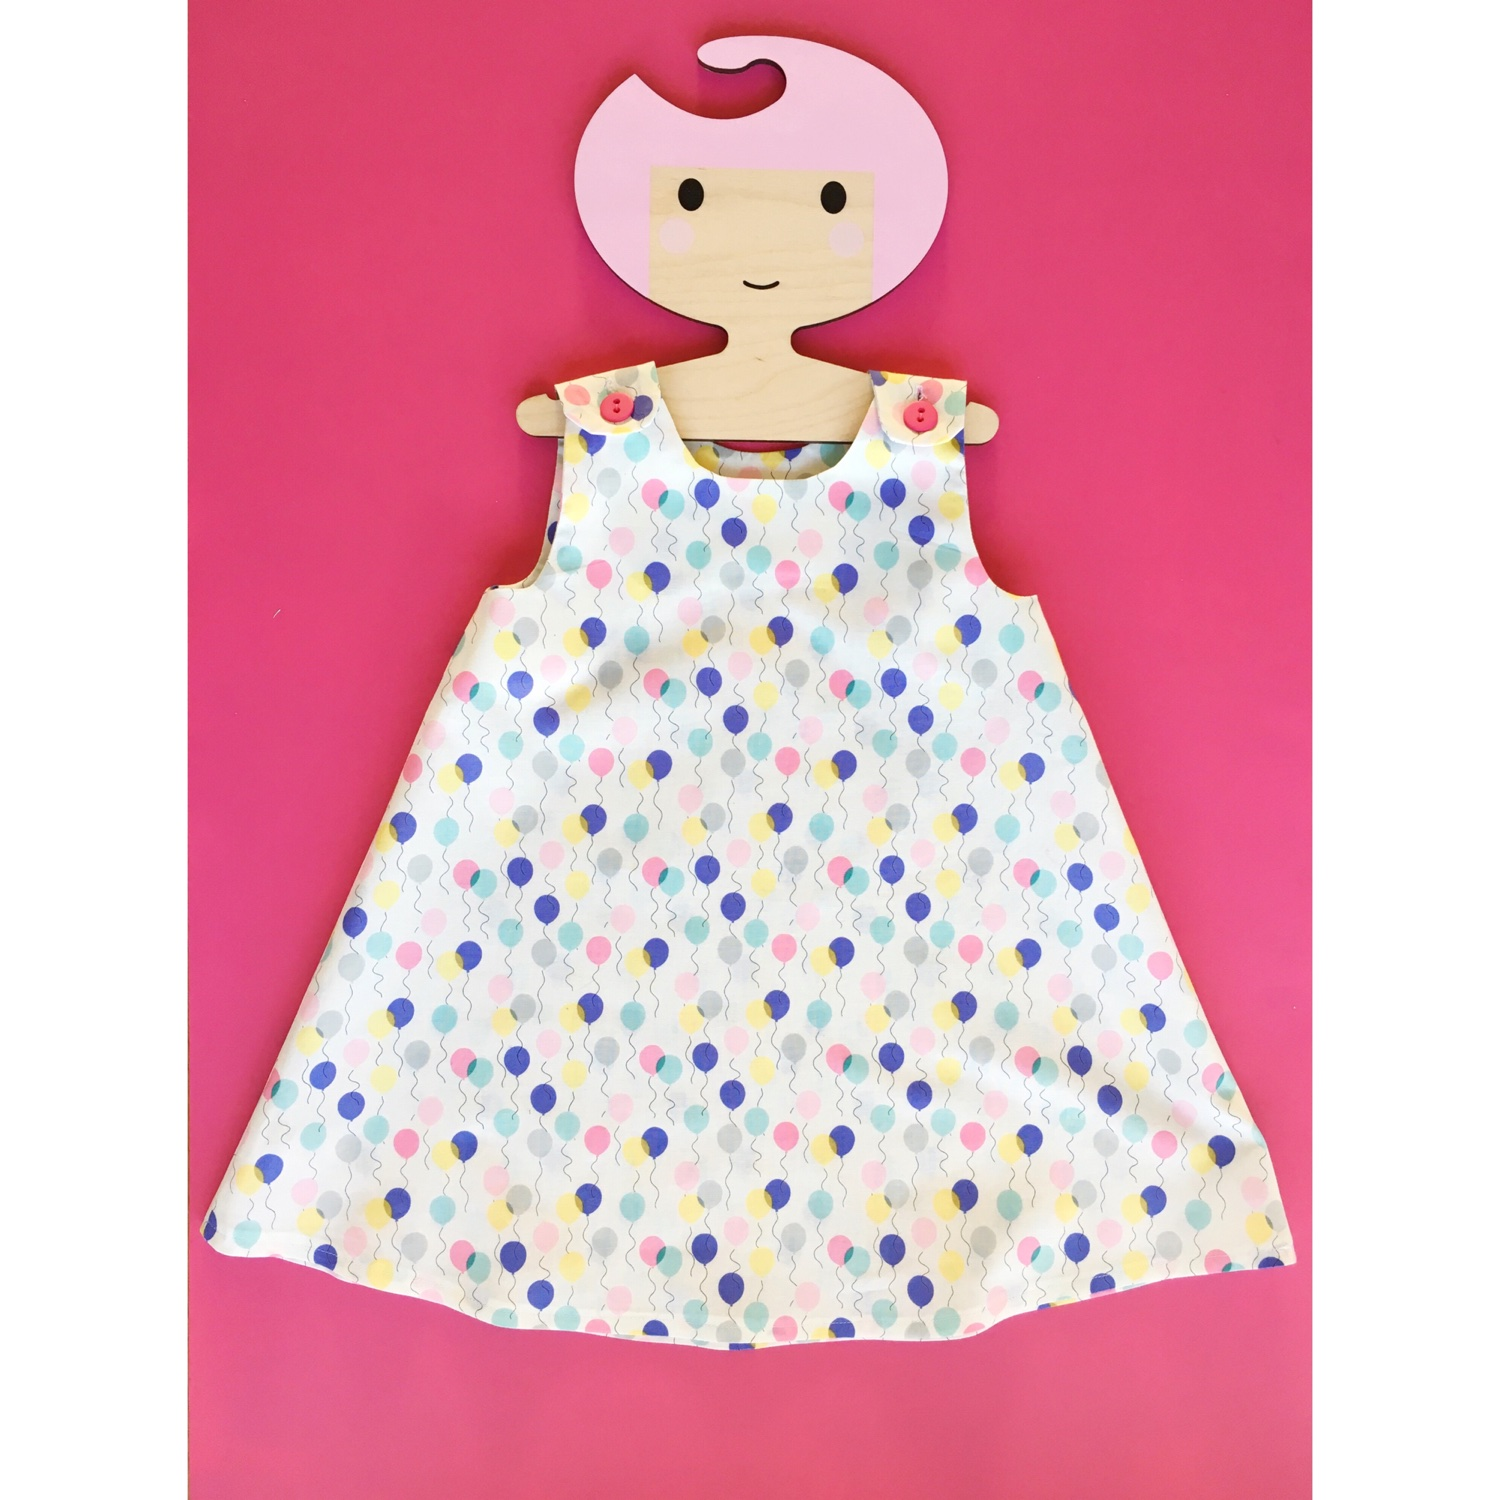 A special dress for our birthday girl! | Hello! Hooray!